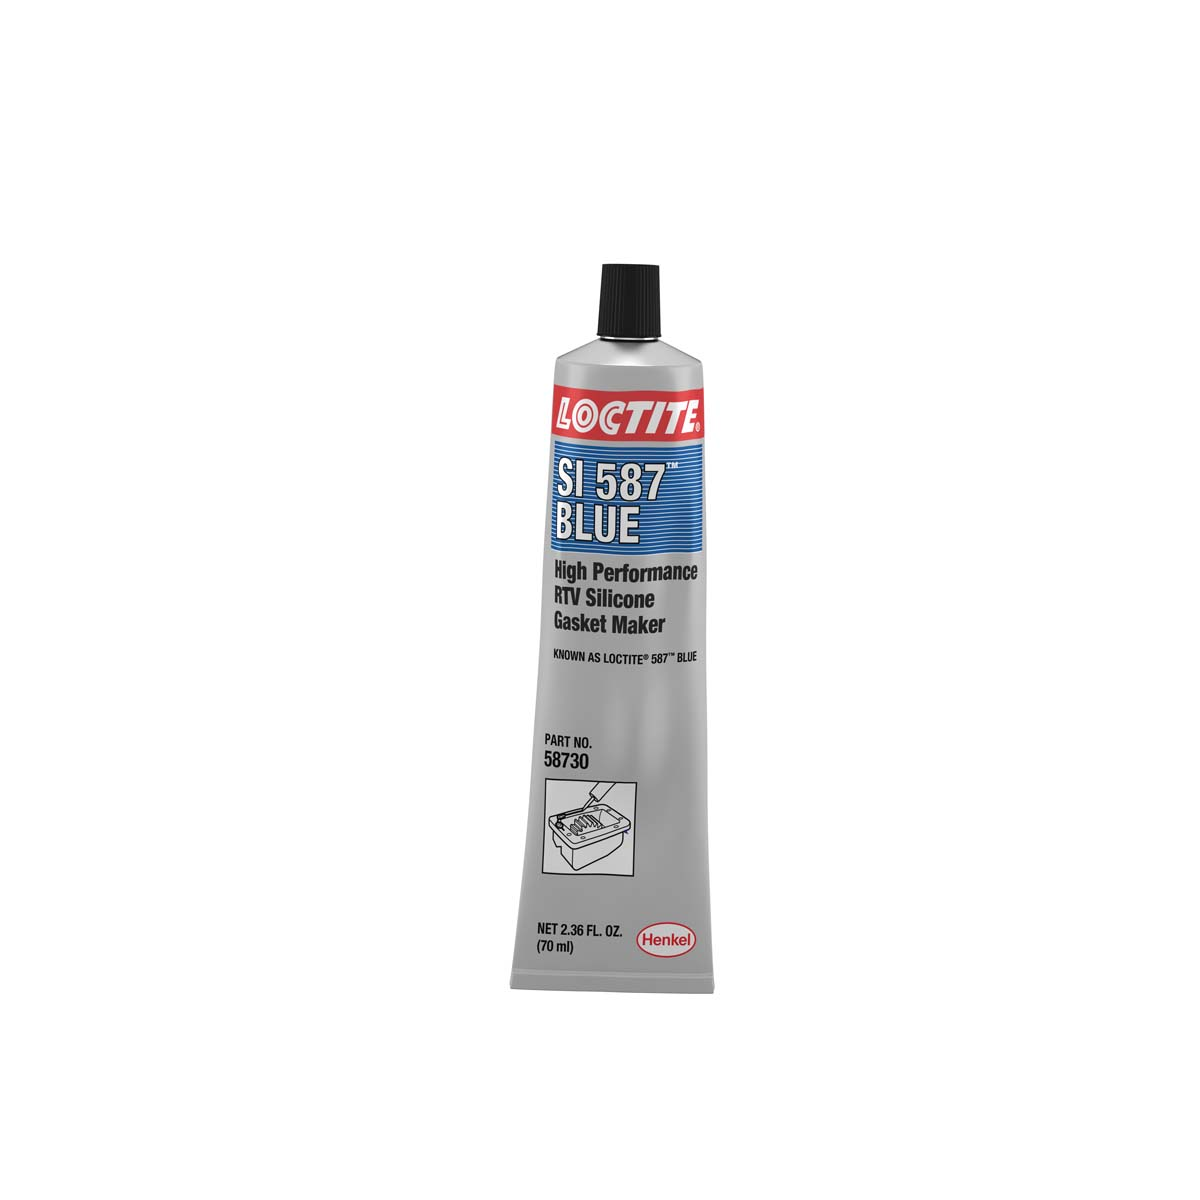 Loctite SI 587 High Performance RTV Silicone